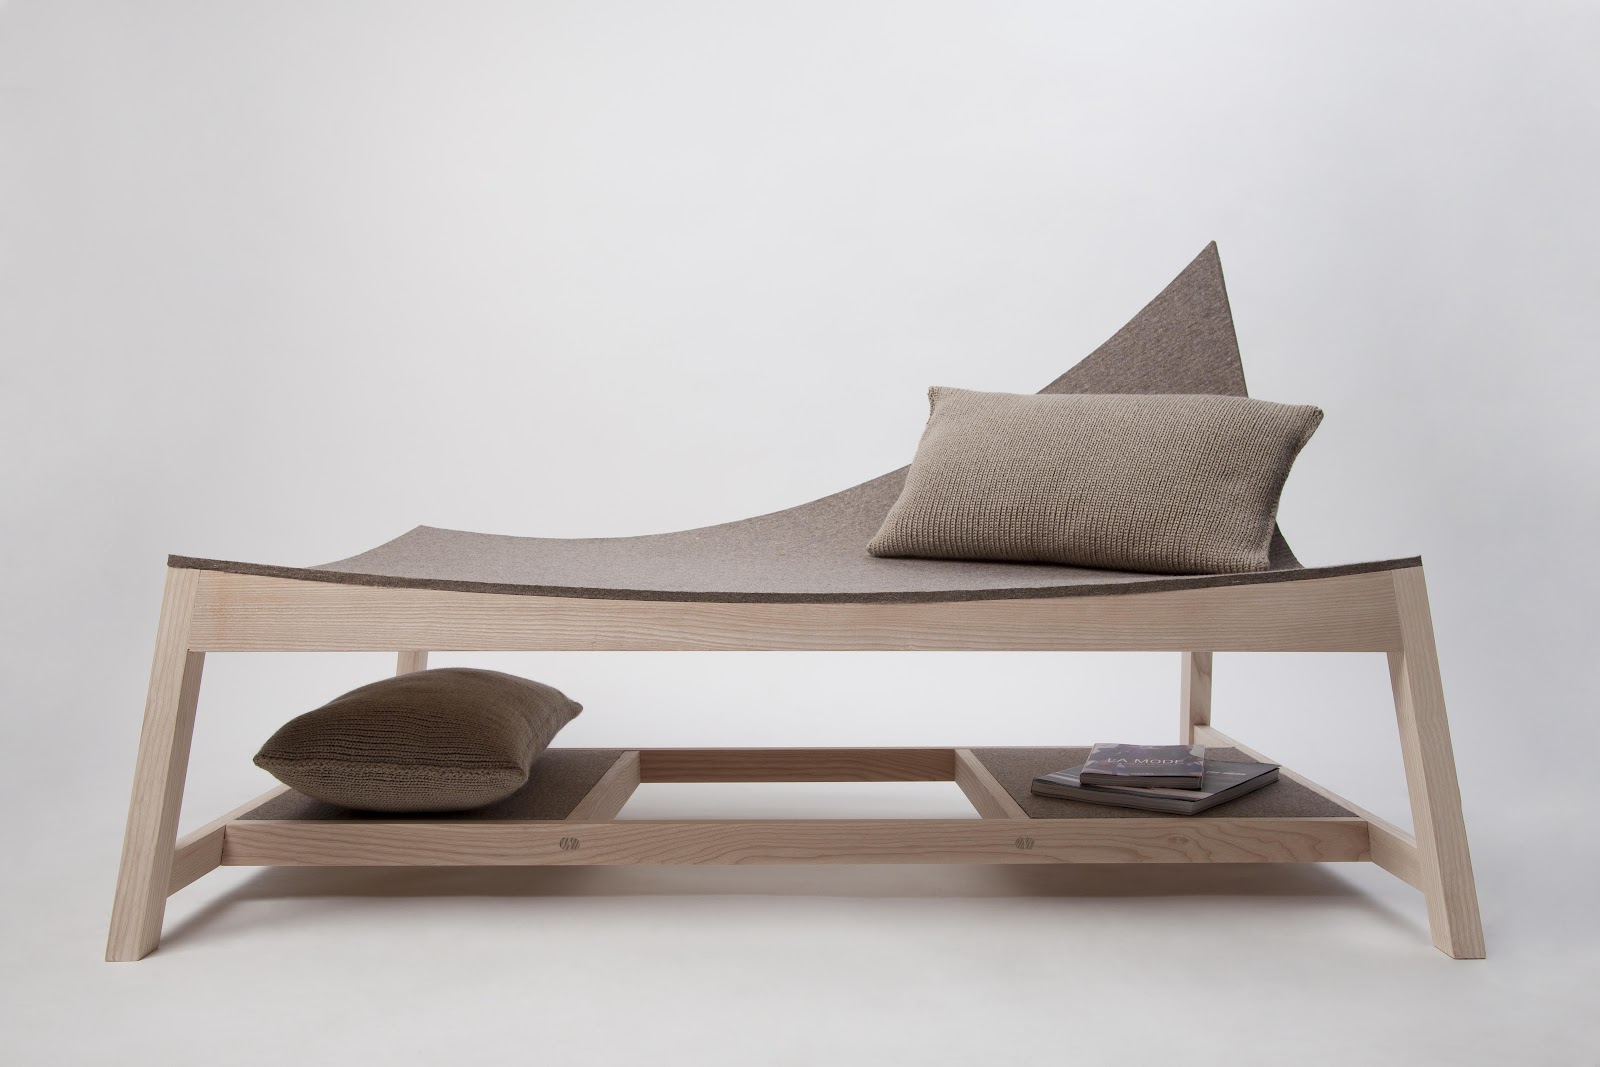 Awesome design ideas experimental seating furniture by for In design furniture